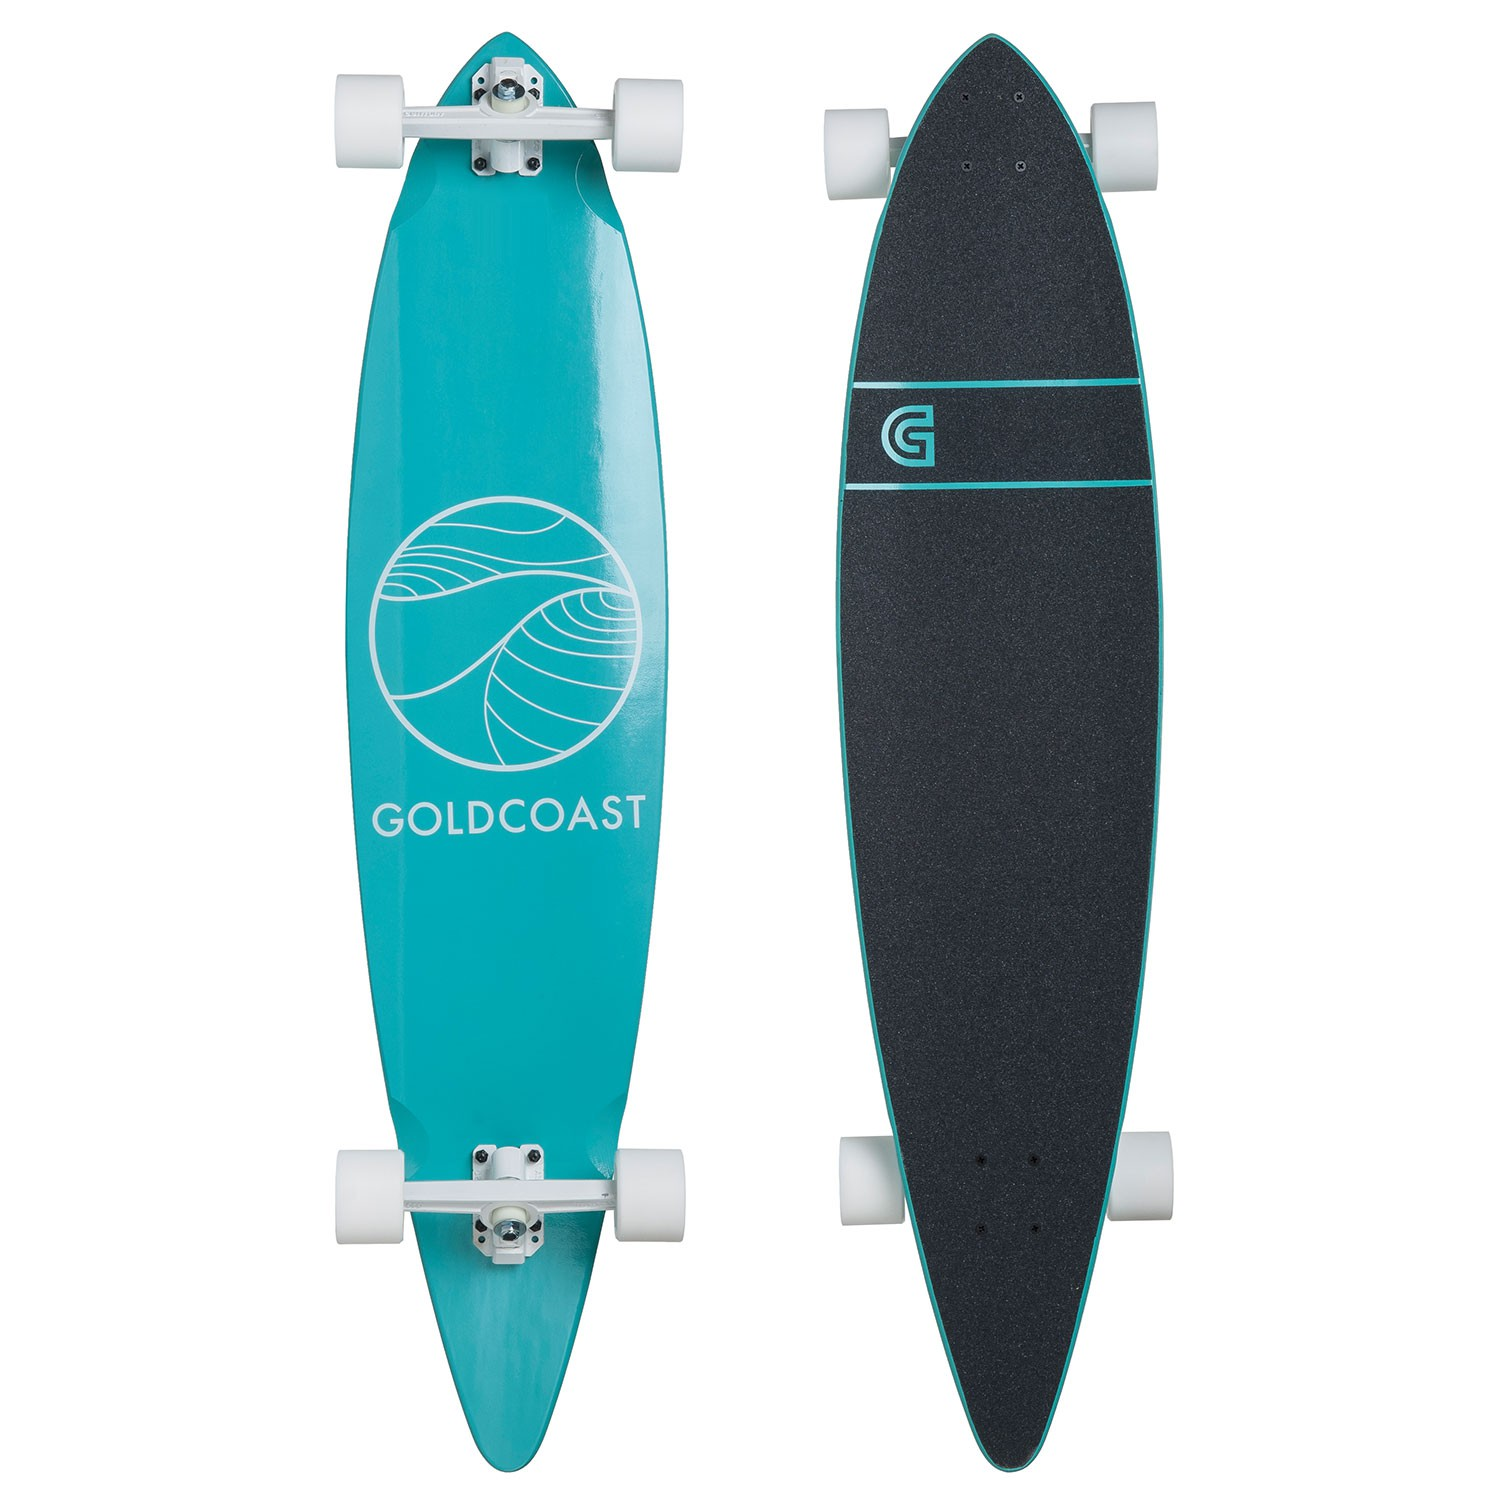 Longboard Goldcoast Classic Pintail turquoise